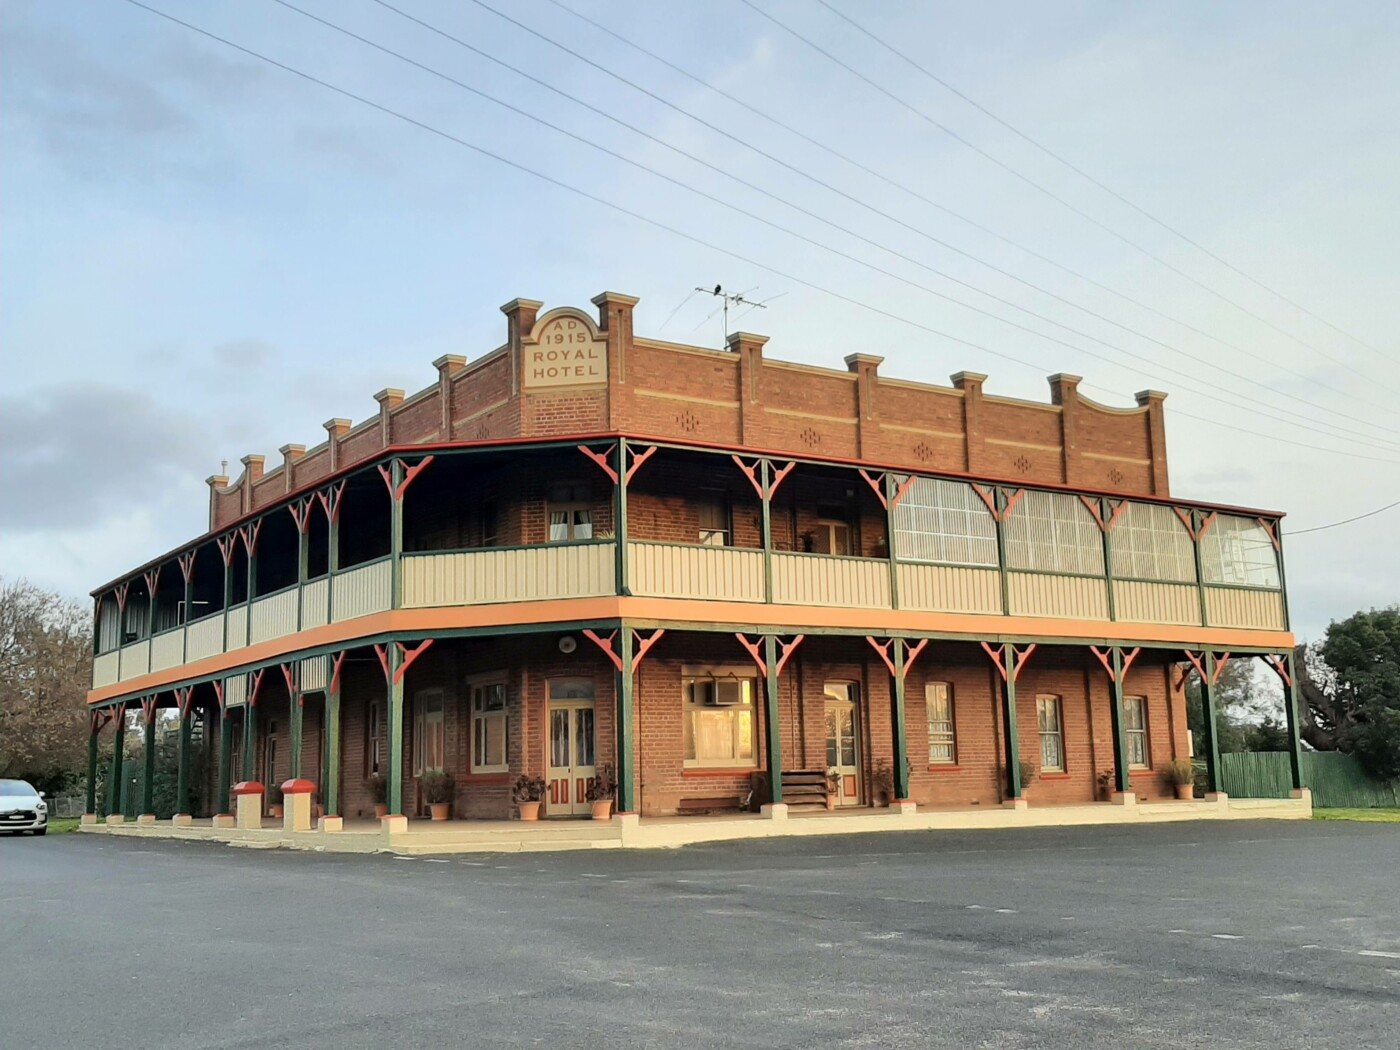 Royal Hotel building, Galong - now a private residence